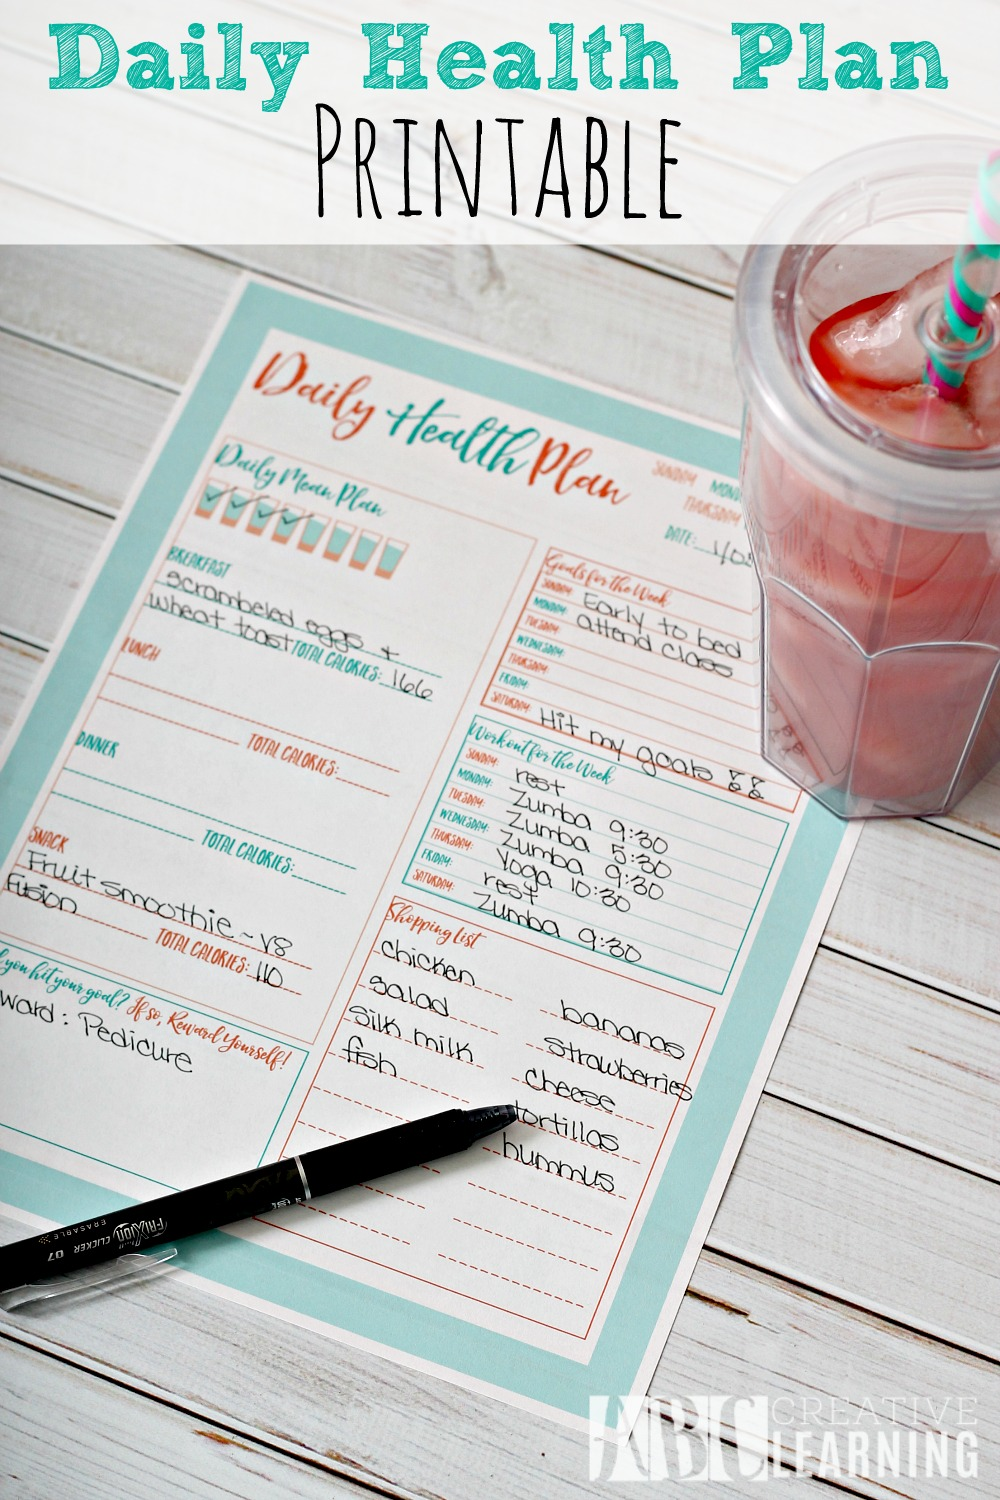 Daily Health Plan Printable